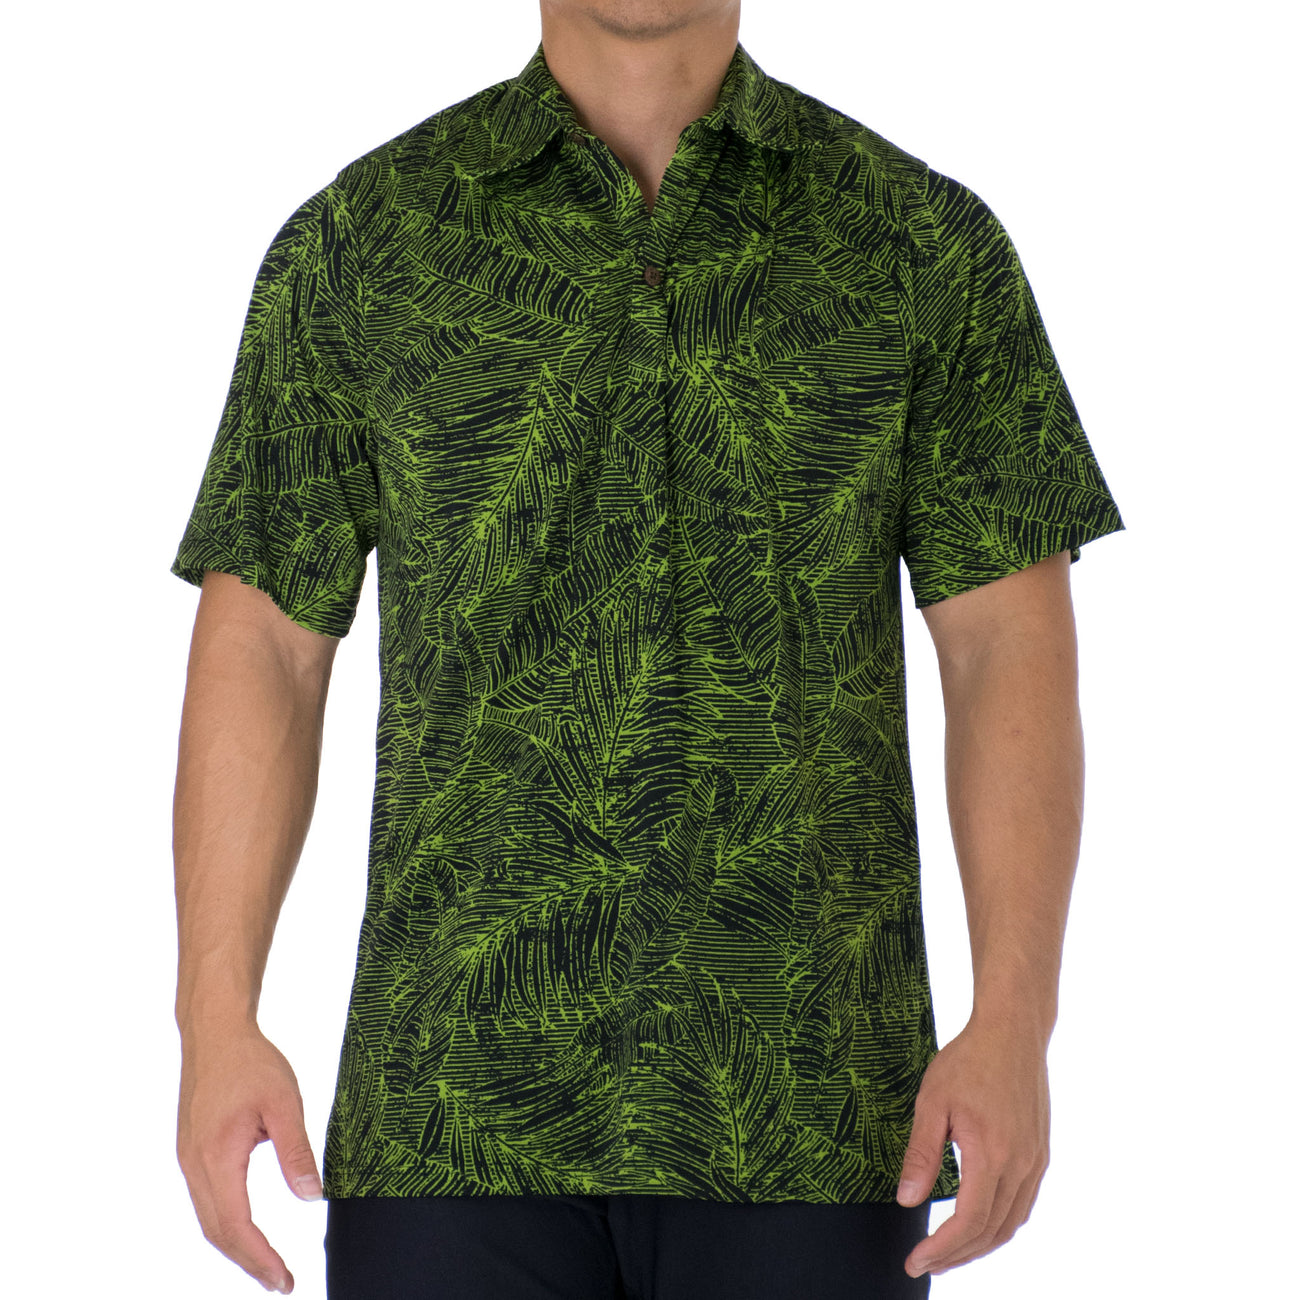 KAMA ALOHA POLO KNIT SHIRT